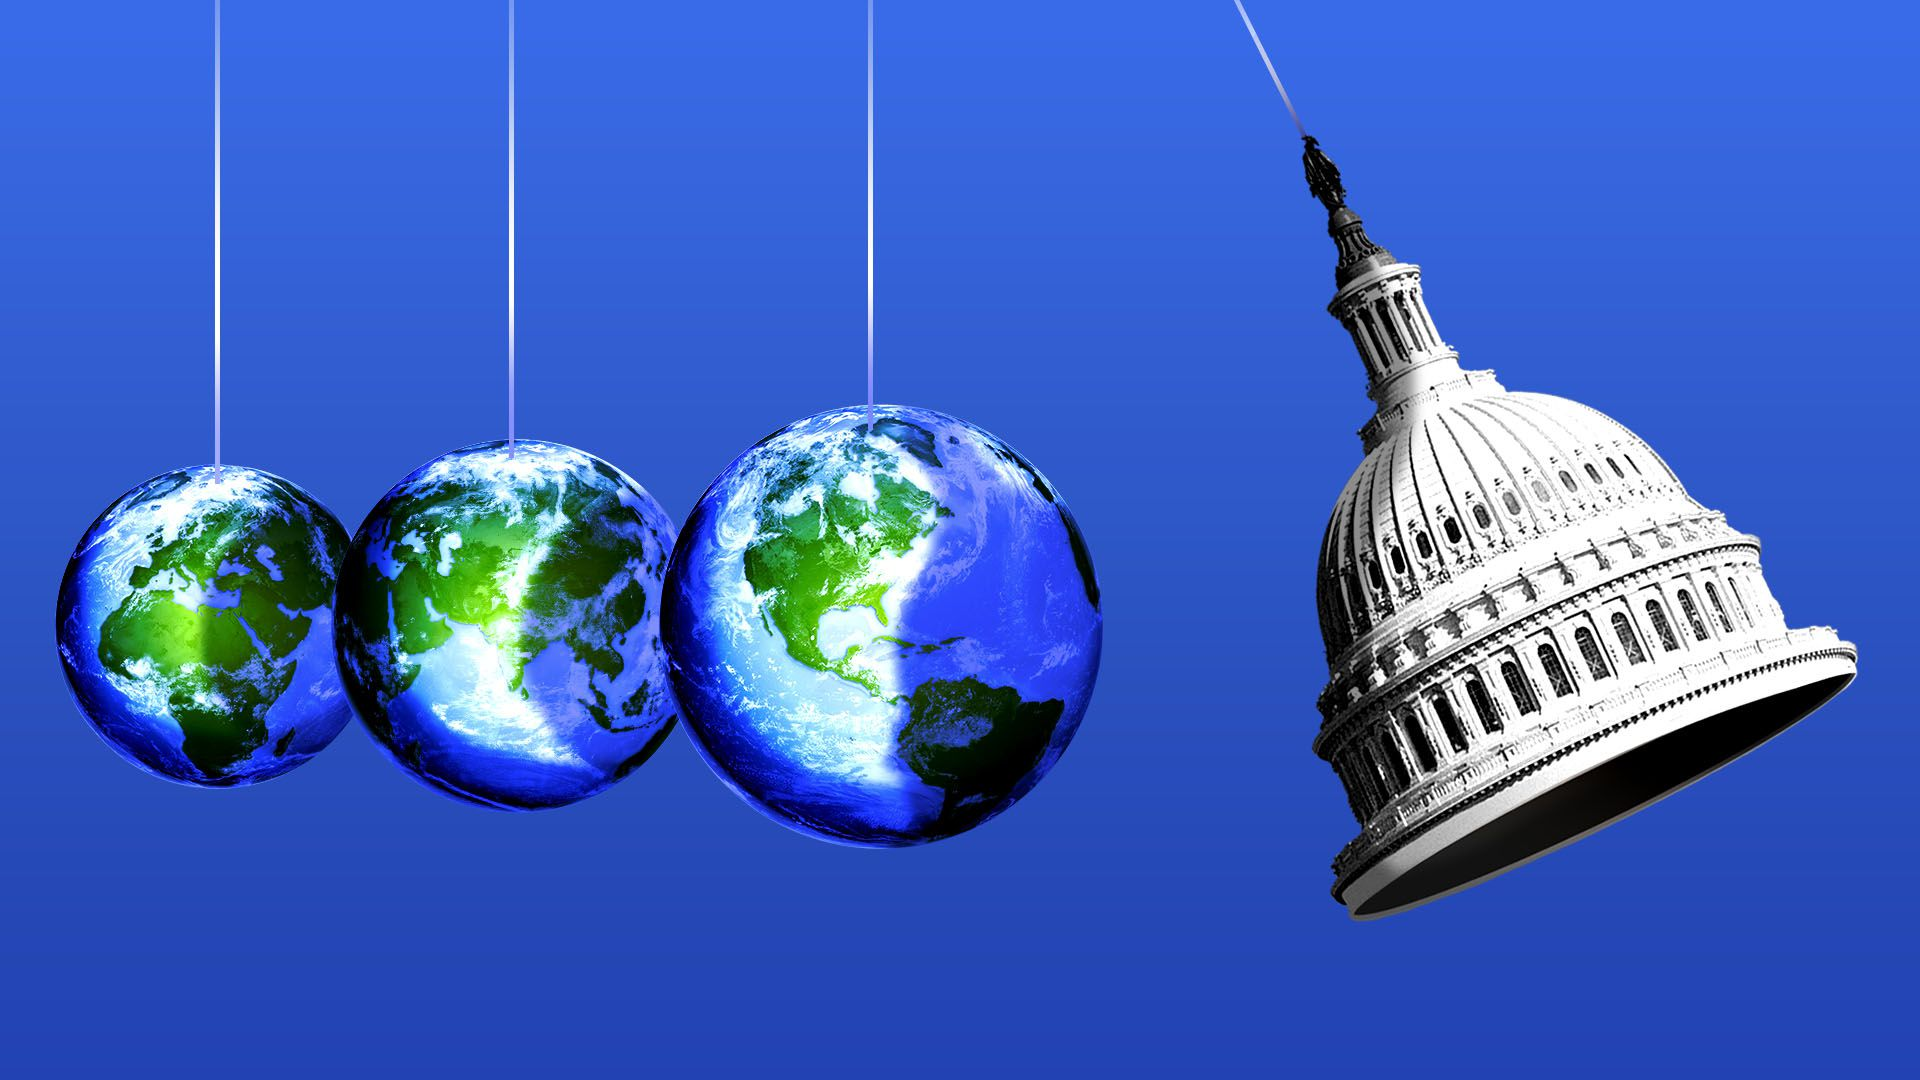 Illustration of a Newton's Cradle featuring multiple earths and the Capitol dome